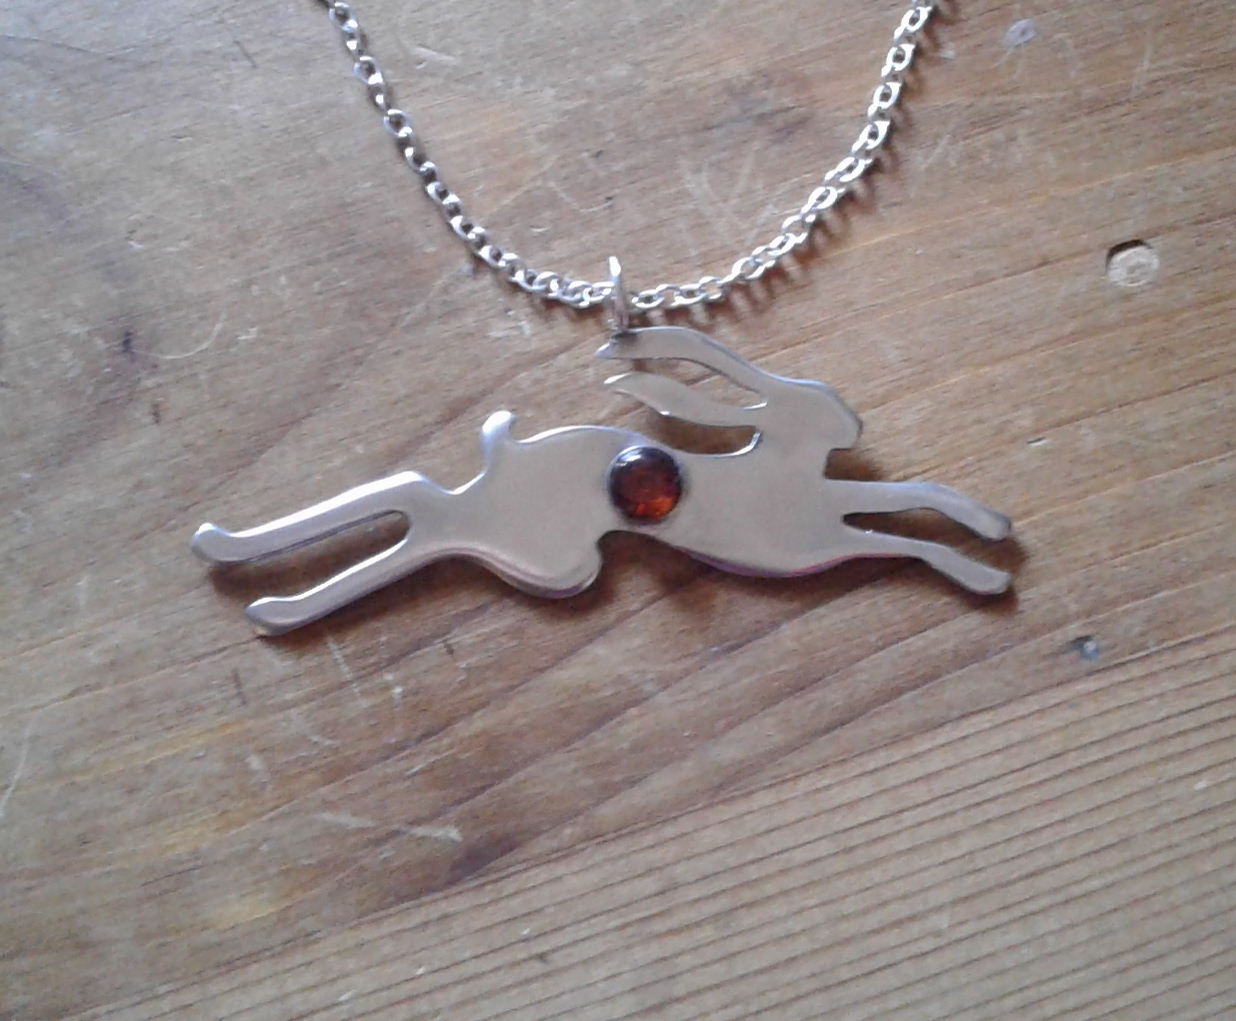 The tale of the Amber Hare (silver chain)